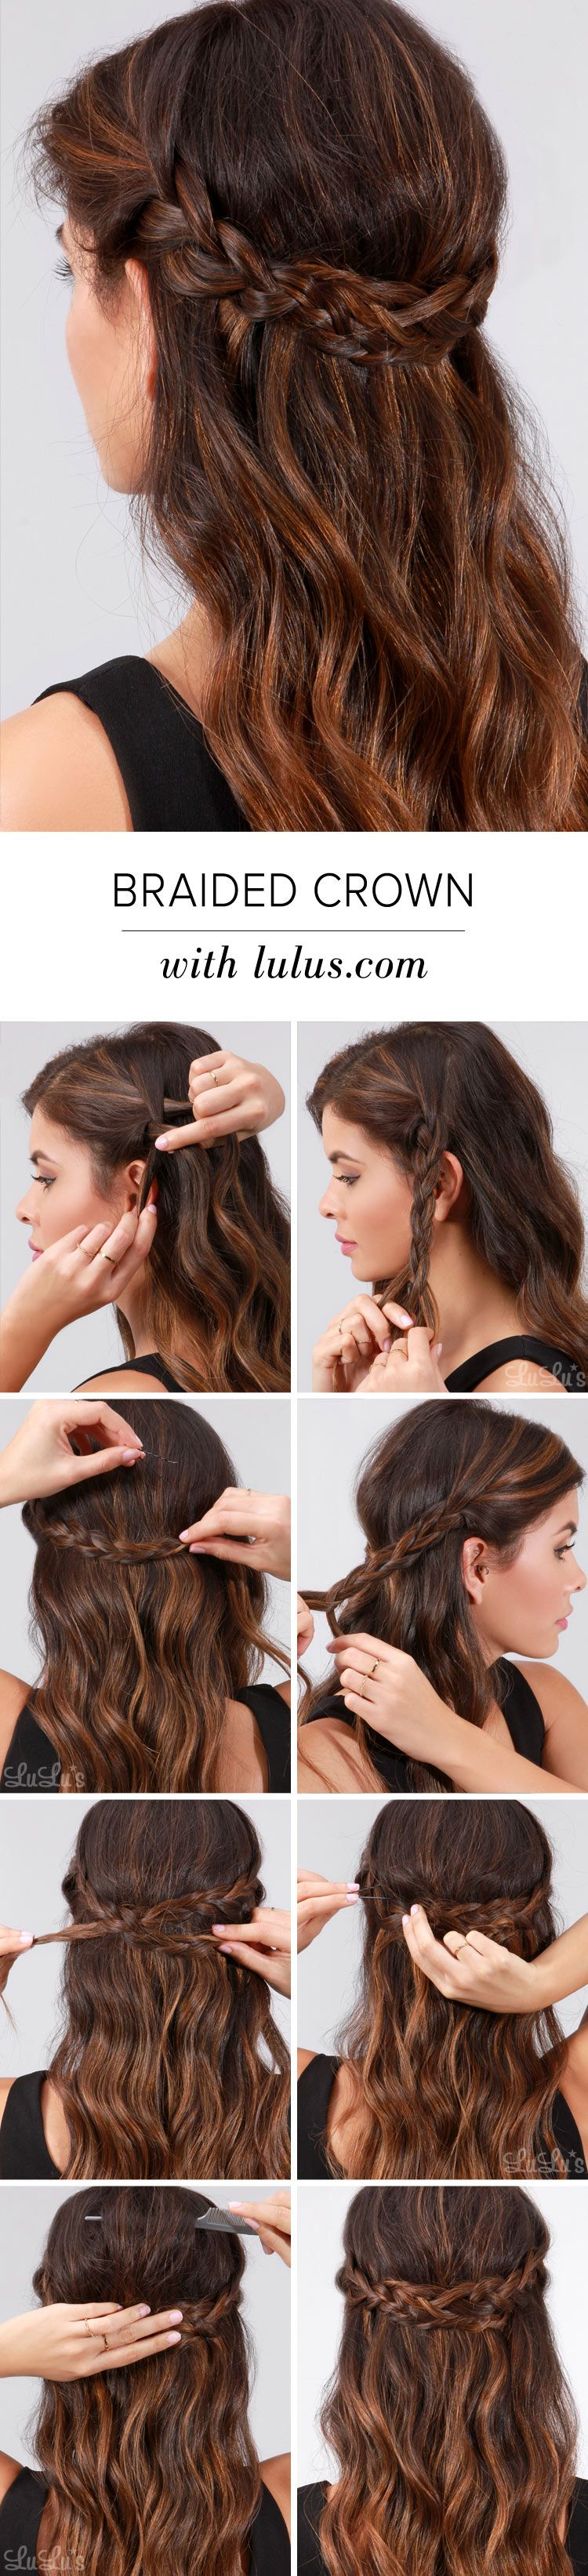 Lulus How To Braided Crown Hair Tutorial